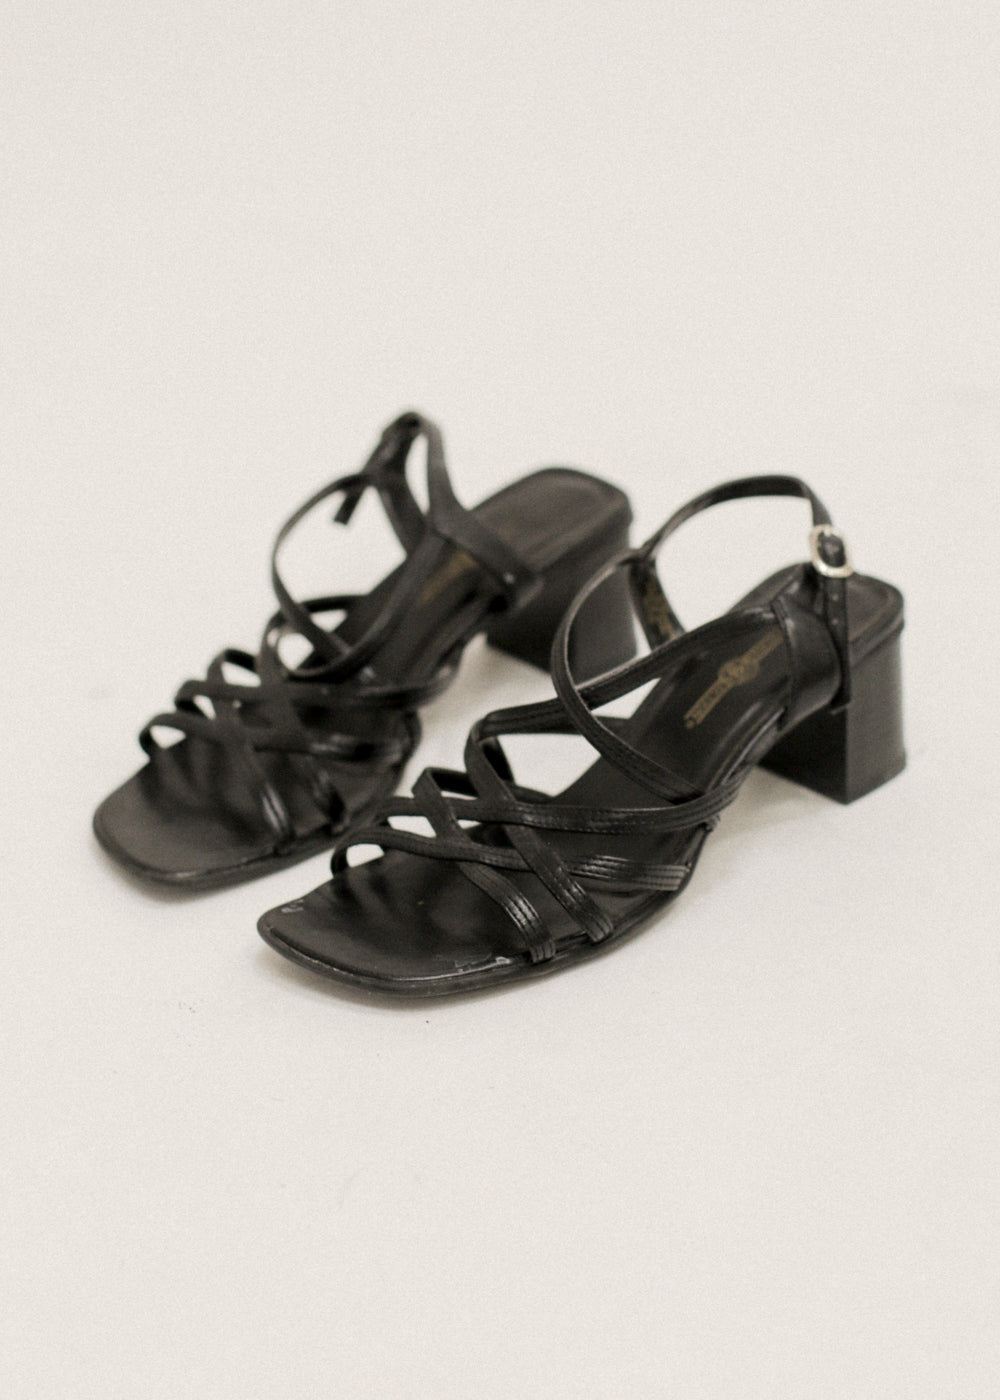 Vintage Black Strappy Heeled Sandals